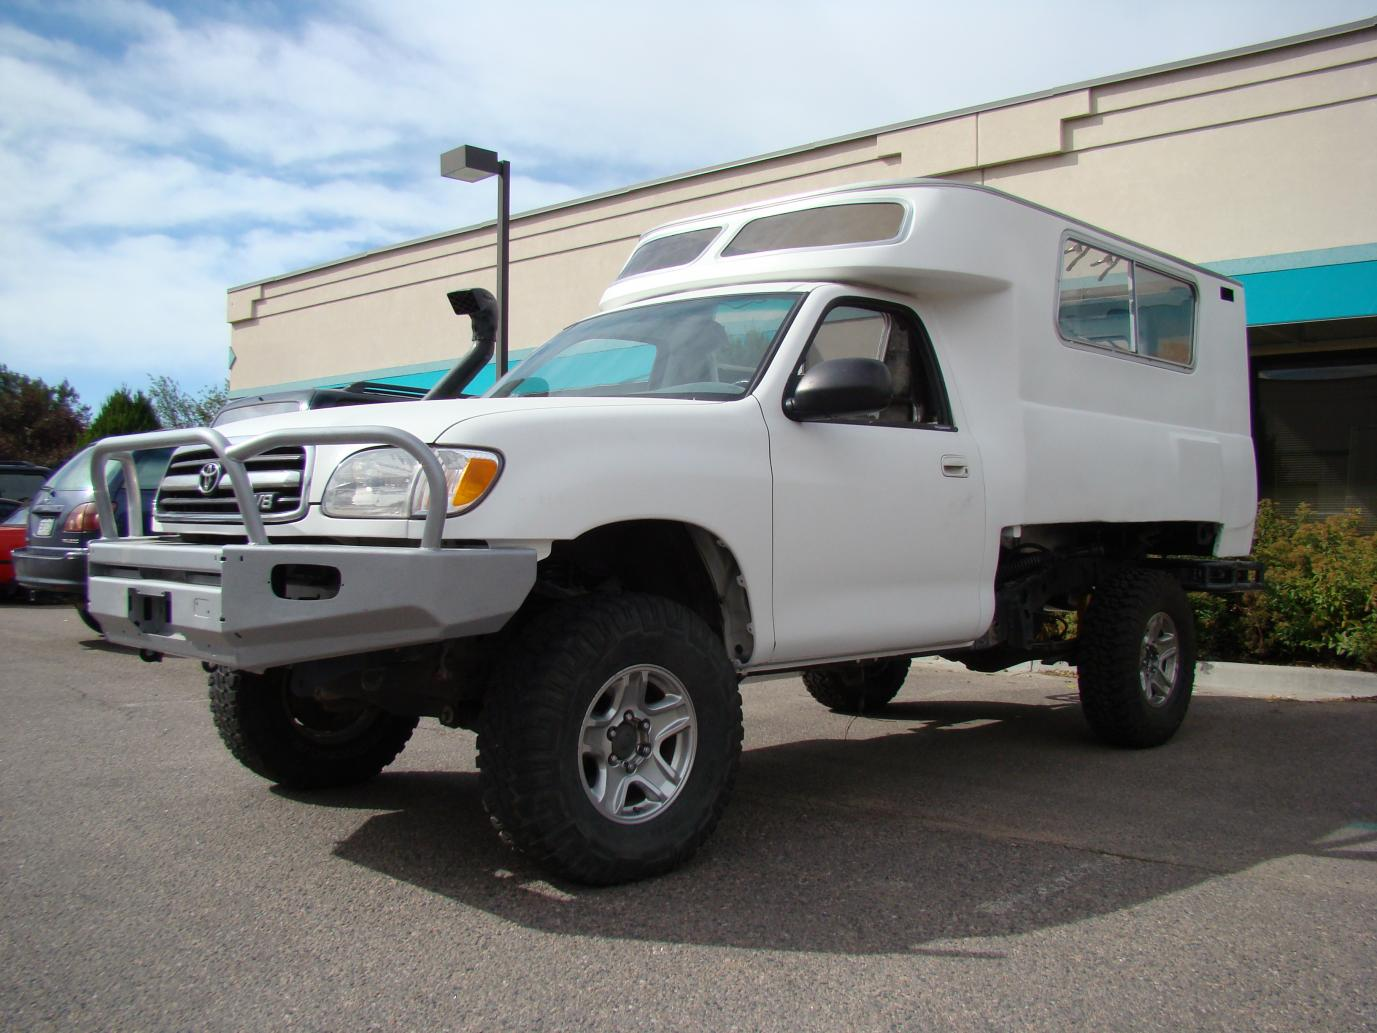 Toyota Tundra Expedition Camper By Irbisoffroad Rising Sun 4wd Club Forum